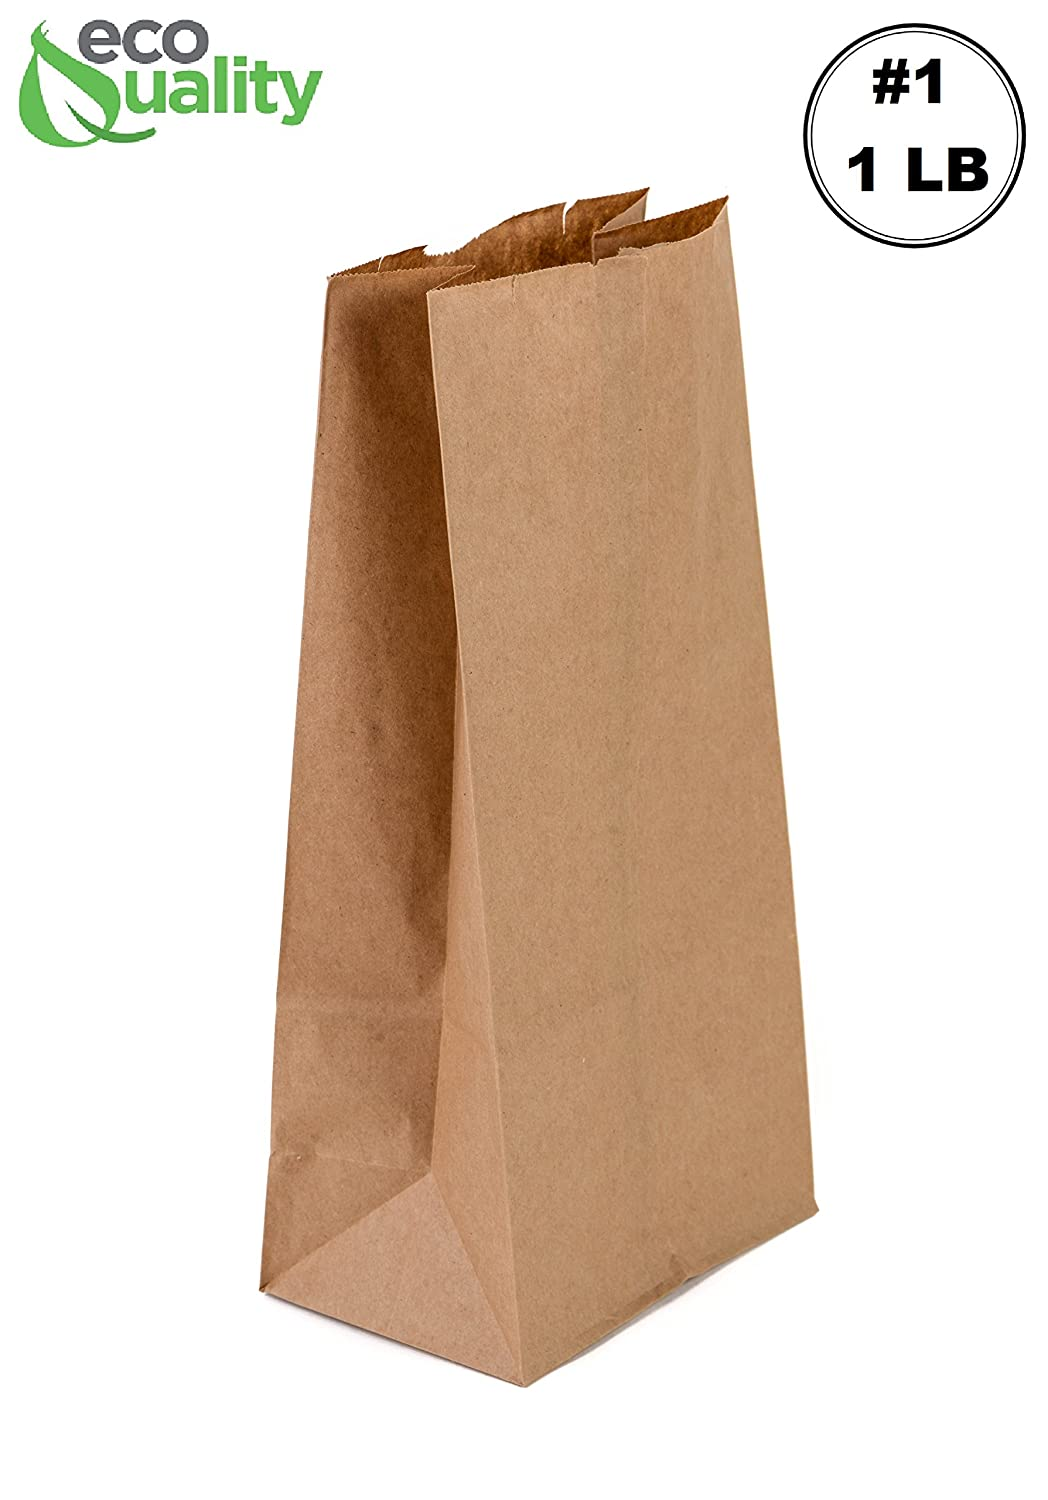 EcoQuality 1000 Mini Brown Kraft Paper Bag (1 lb) Small - Paper Lunch Bags, Small Snacks, Gift Bags, Grocery, Merchandise, Party Bags (3 1/2 x 2 3/8 x ...